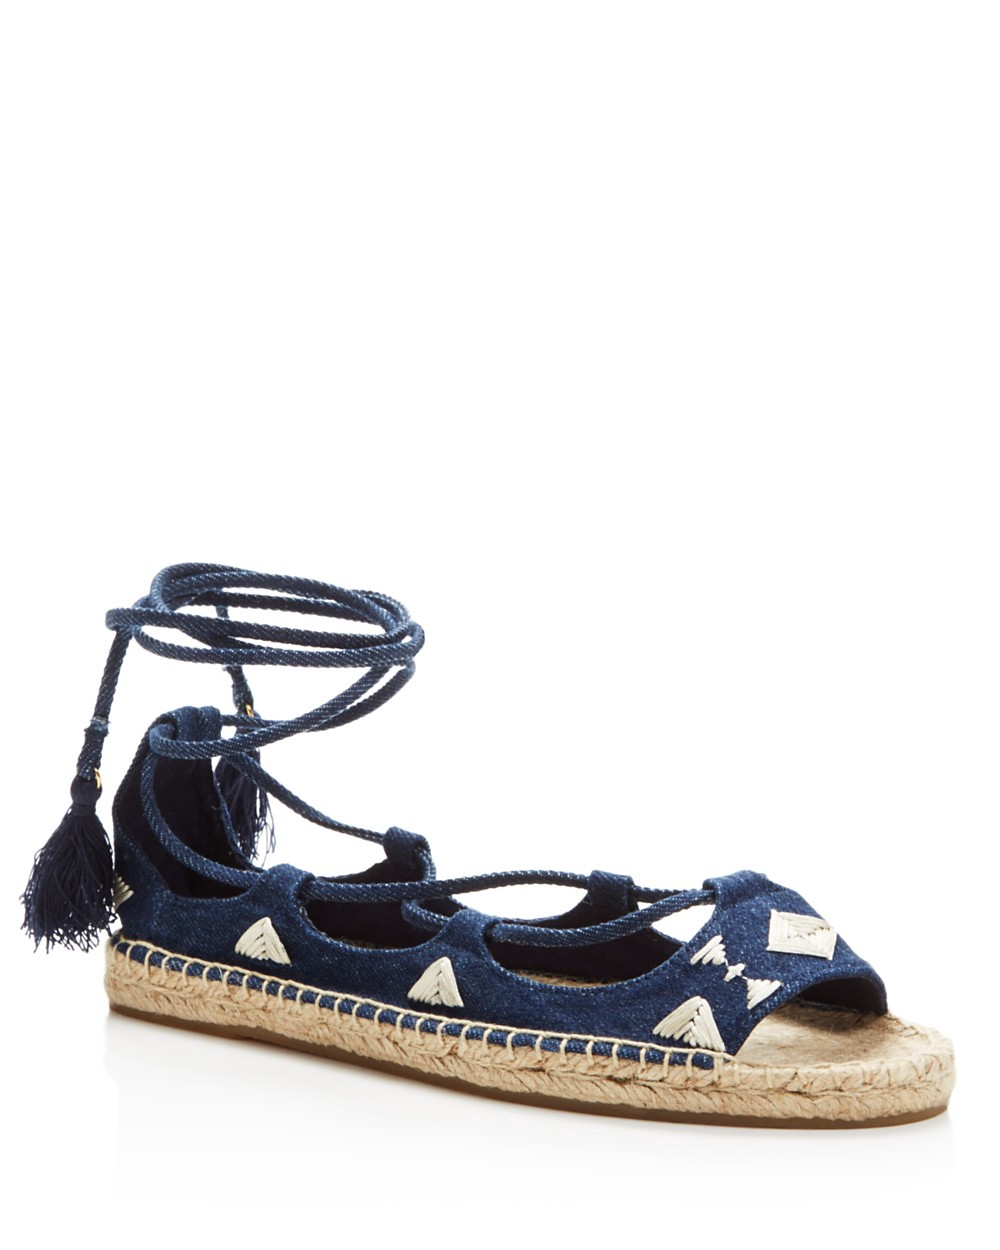 Soludos Peep toes SOLUDOS DENIM OPEN TOE EMBROIDERED LACE UP SANDALS - 100% EXCLUSIVE